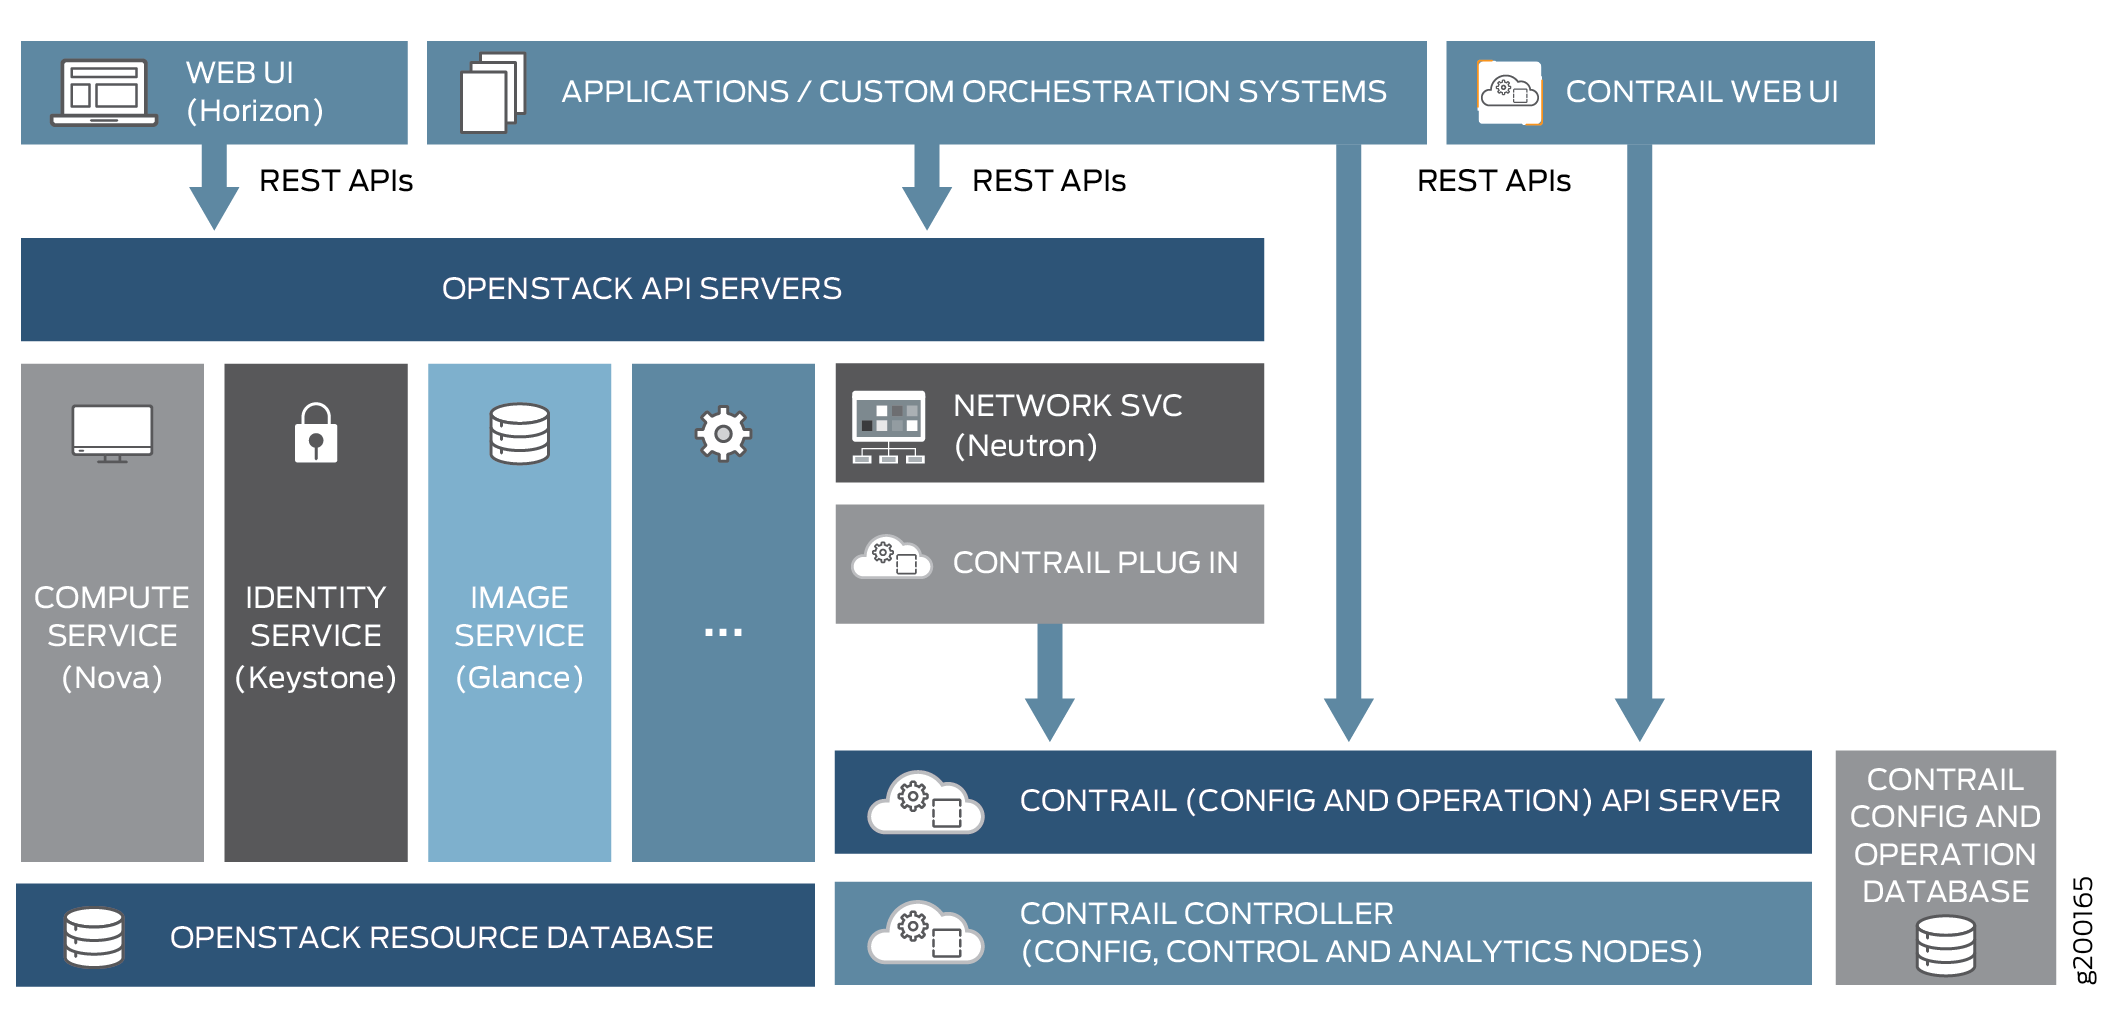 Contrail Cloud Integration with OpenStack Overview